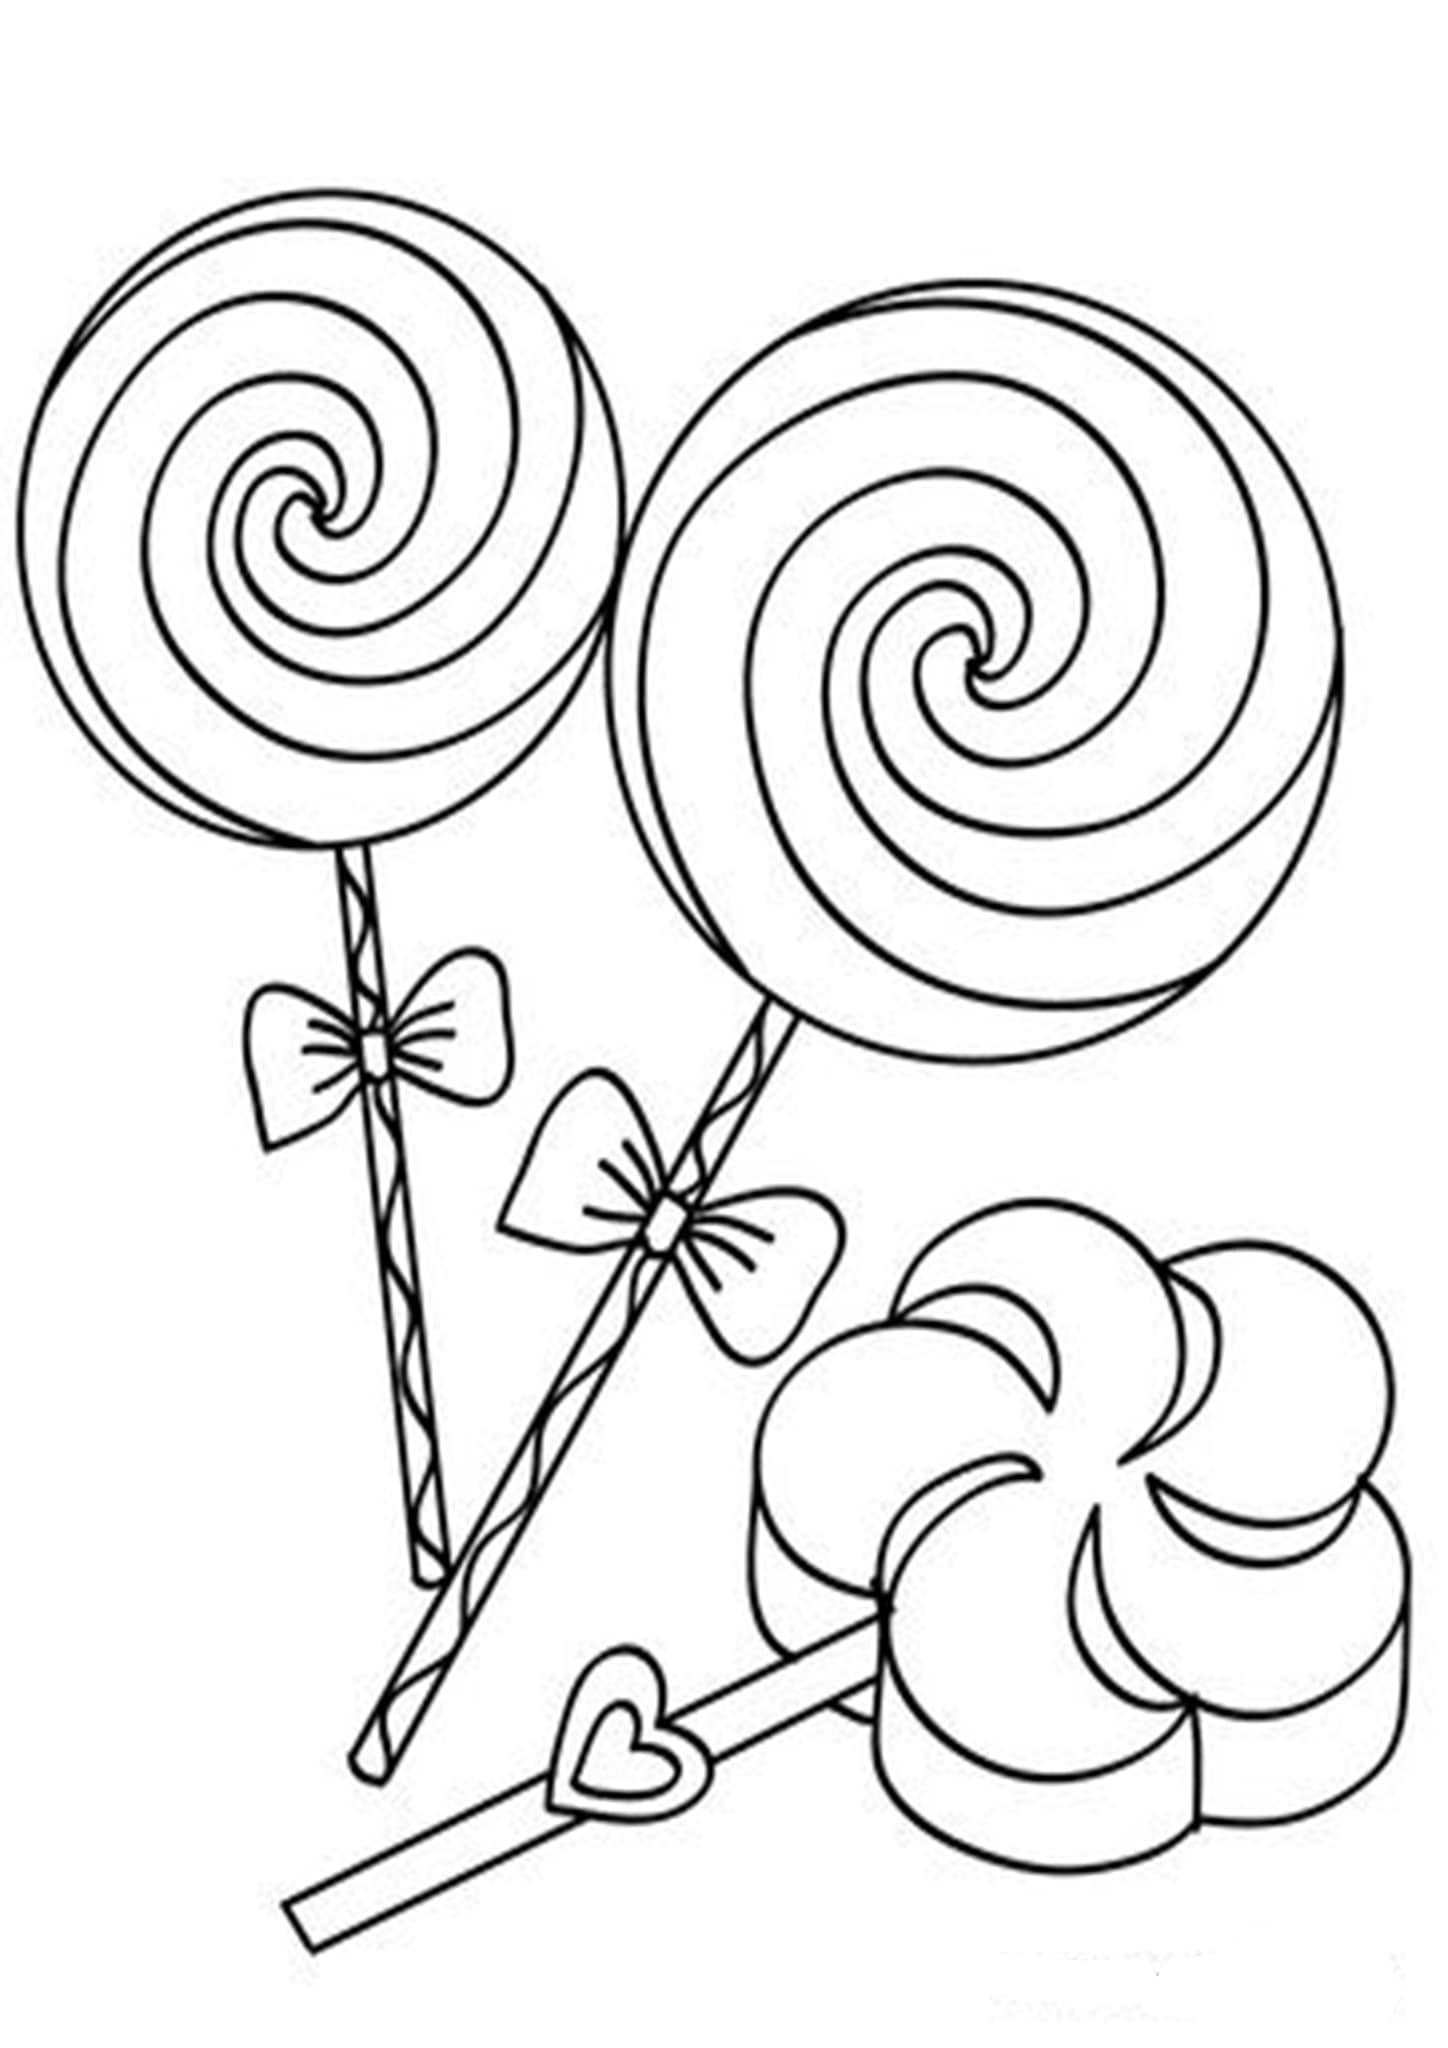 Free & Easy To Print Candy Coloring Pages - Tulamama